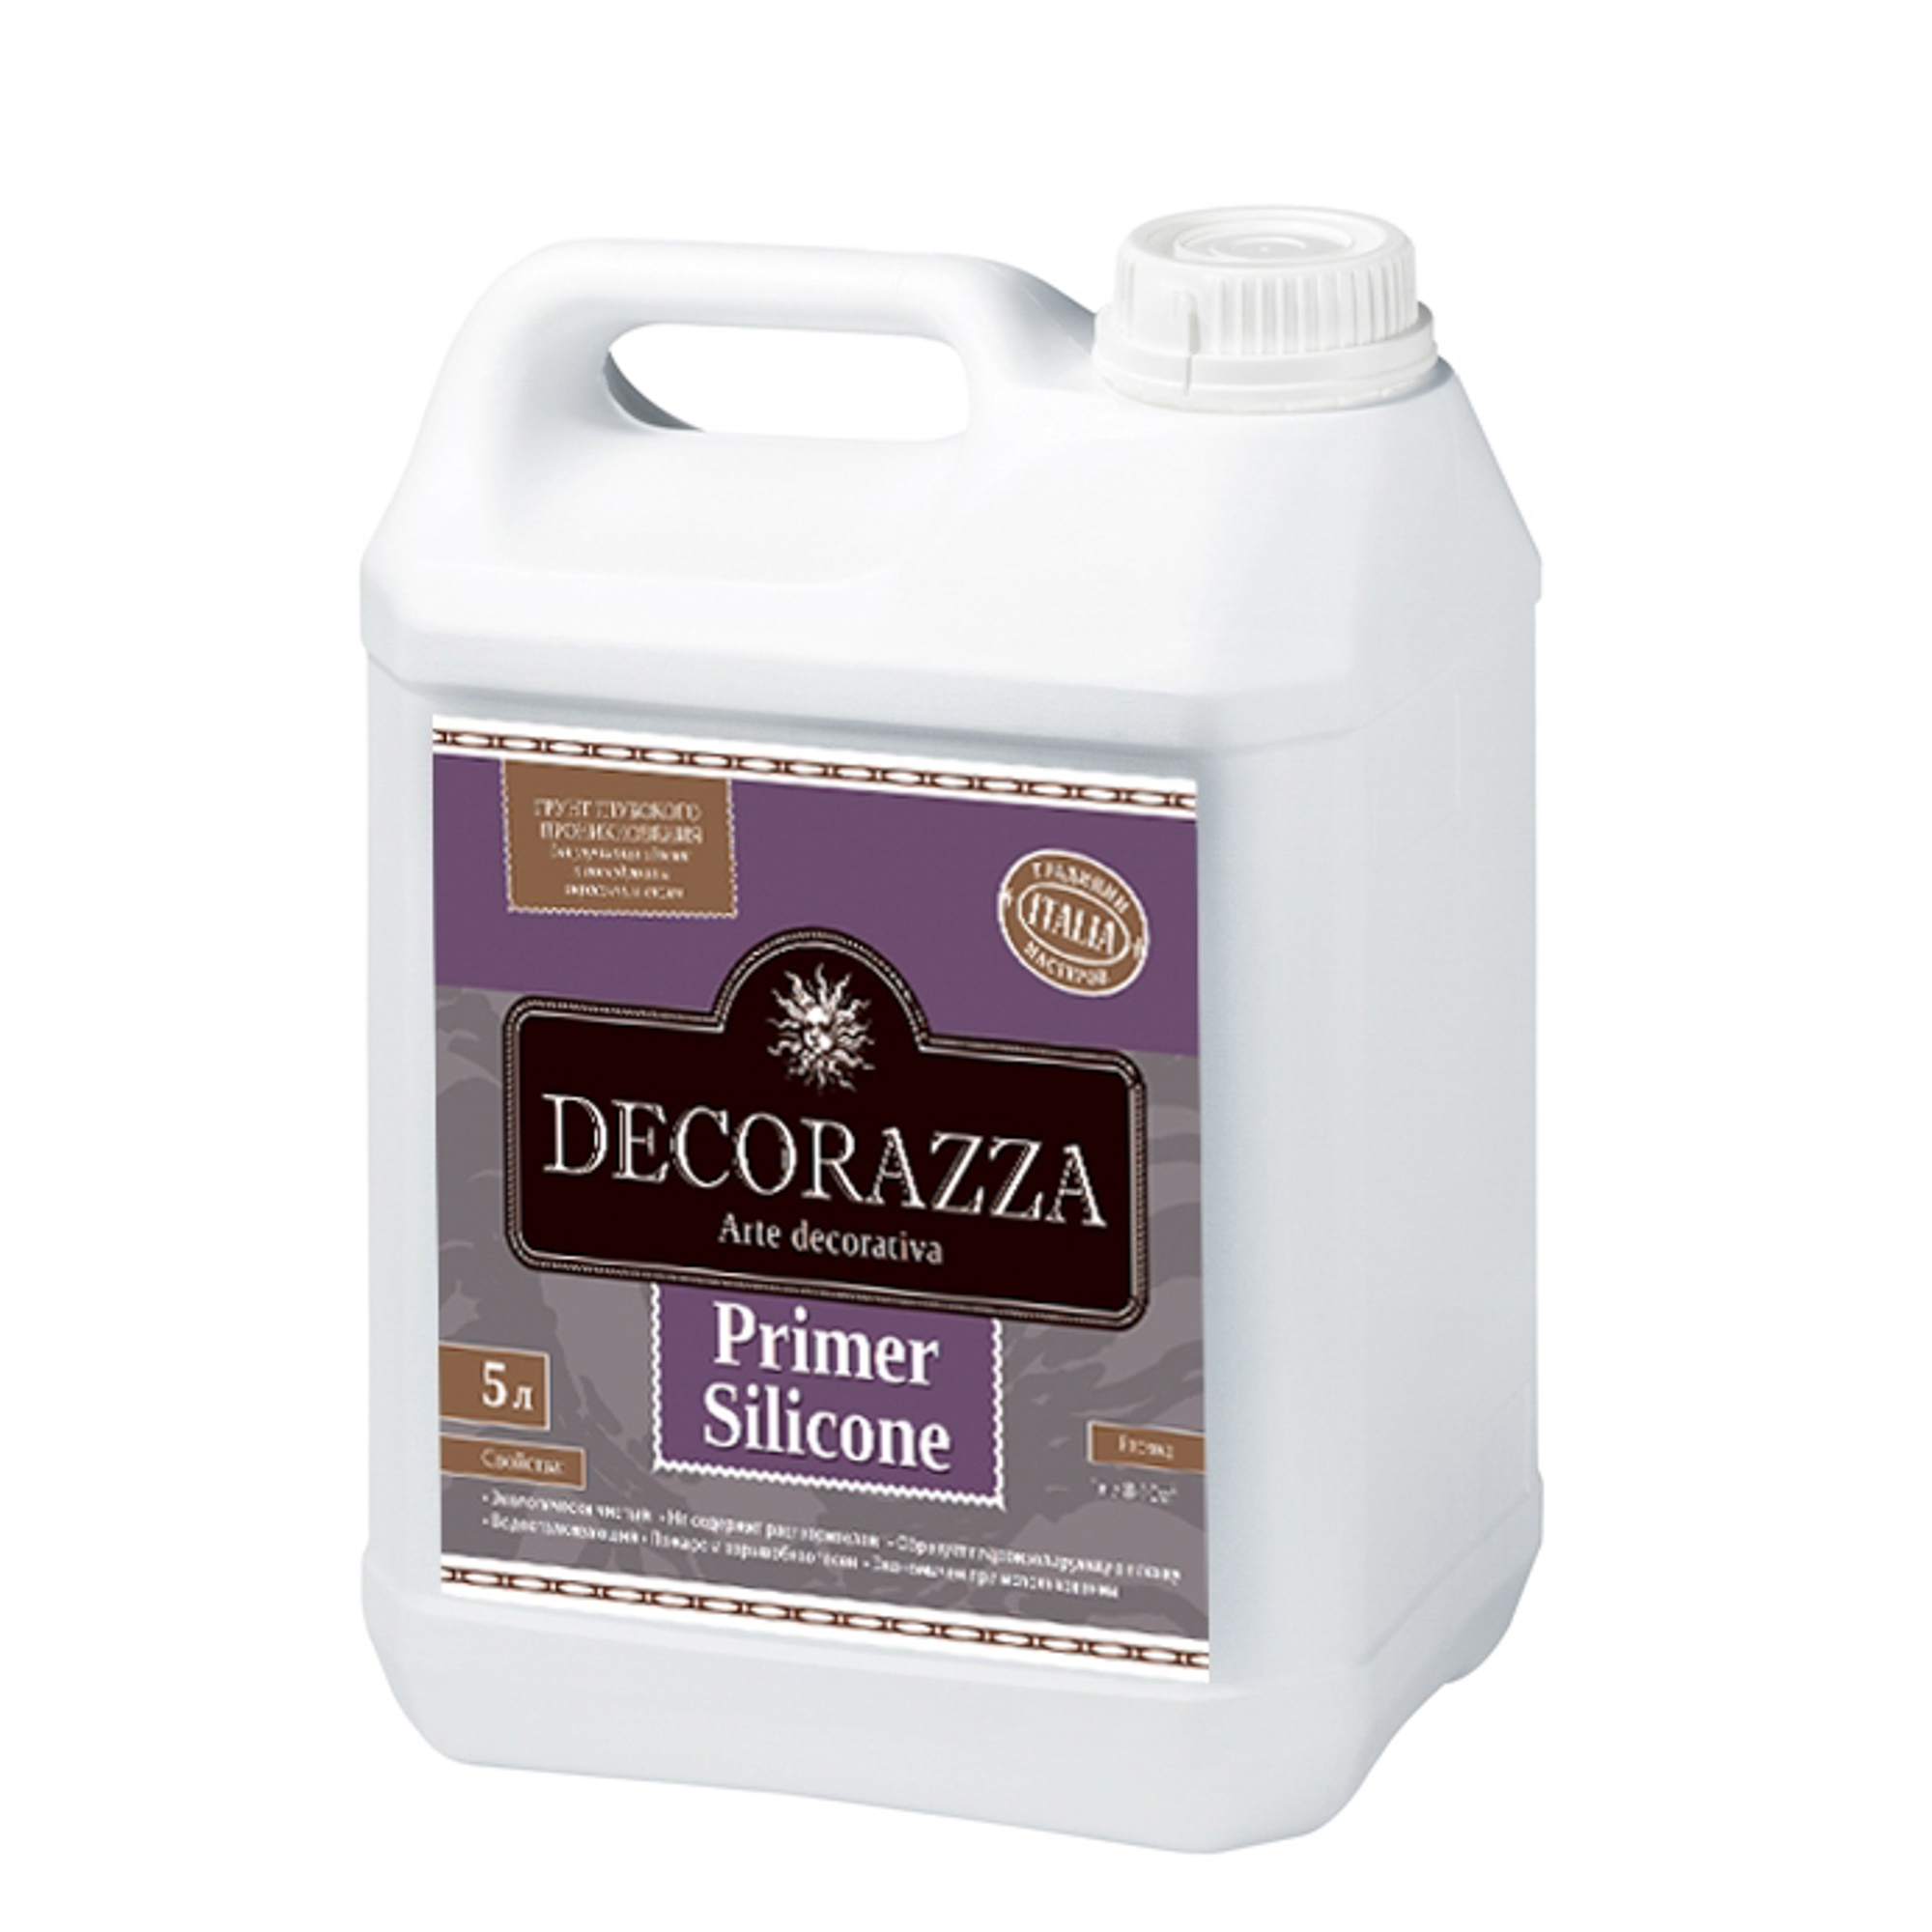 Грунтовка Decorazza Primer Silicone под Silideco 5 кг (DPRS-05)